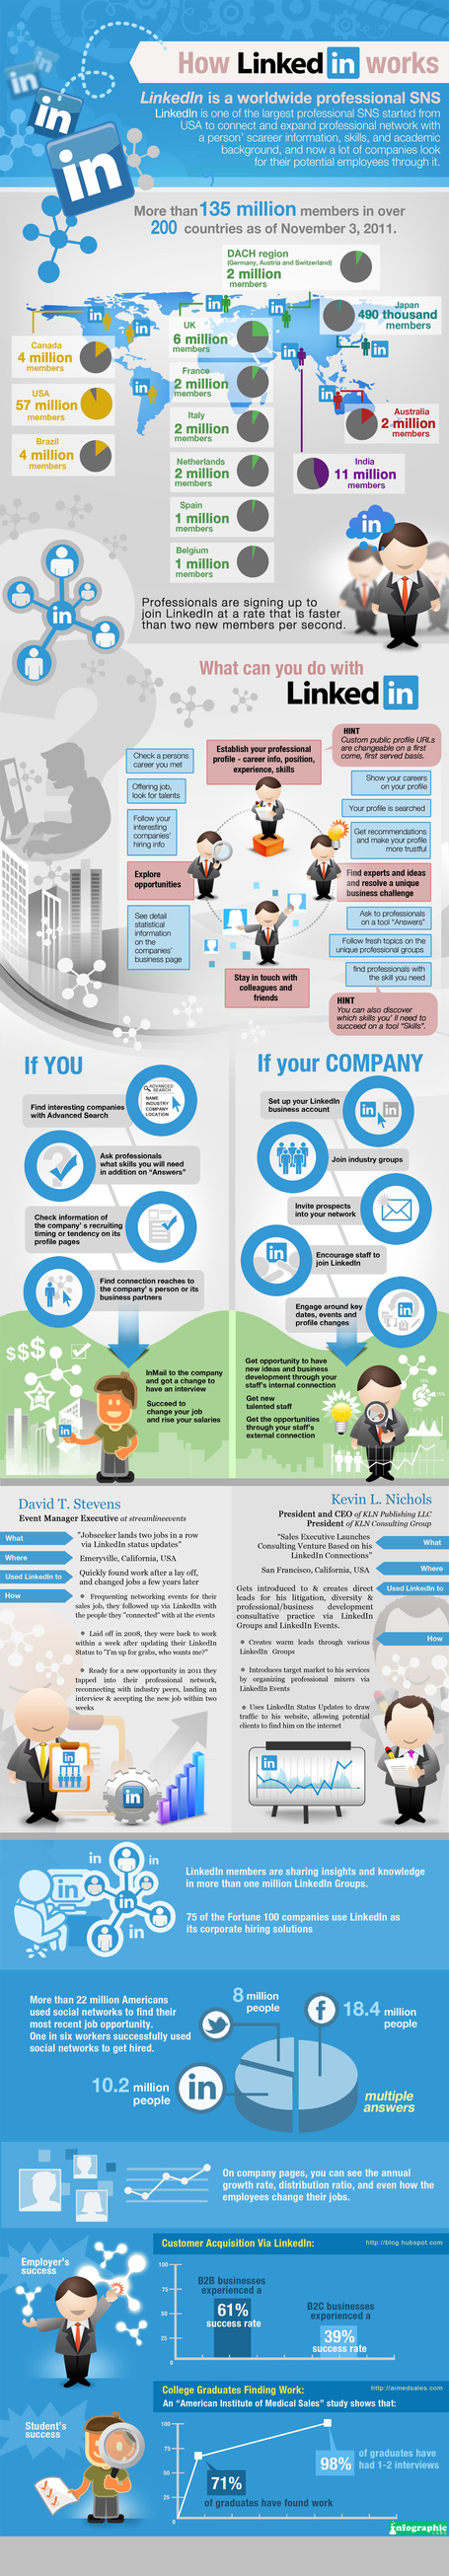 How LinkedIn Actually Works [Infographic] | Social Media for Chambers | Scoop.it